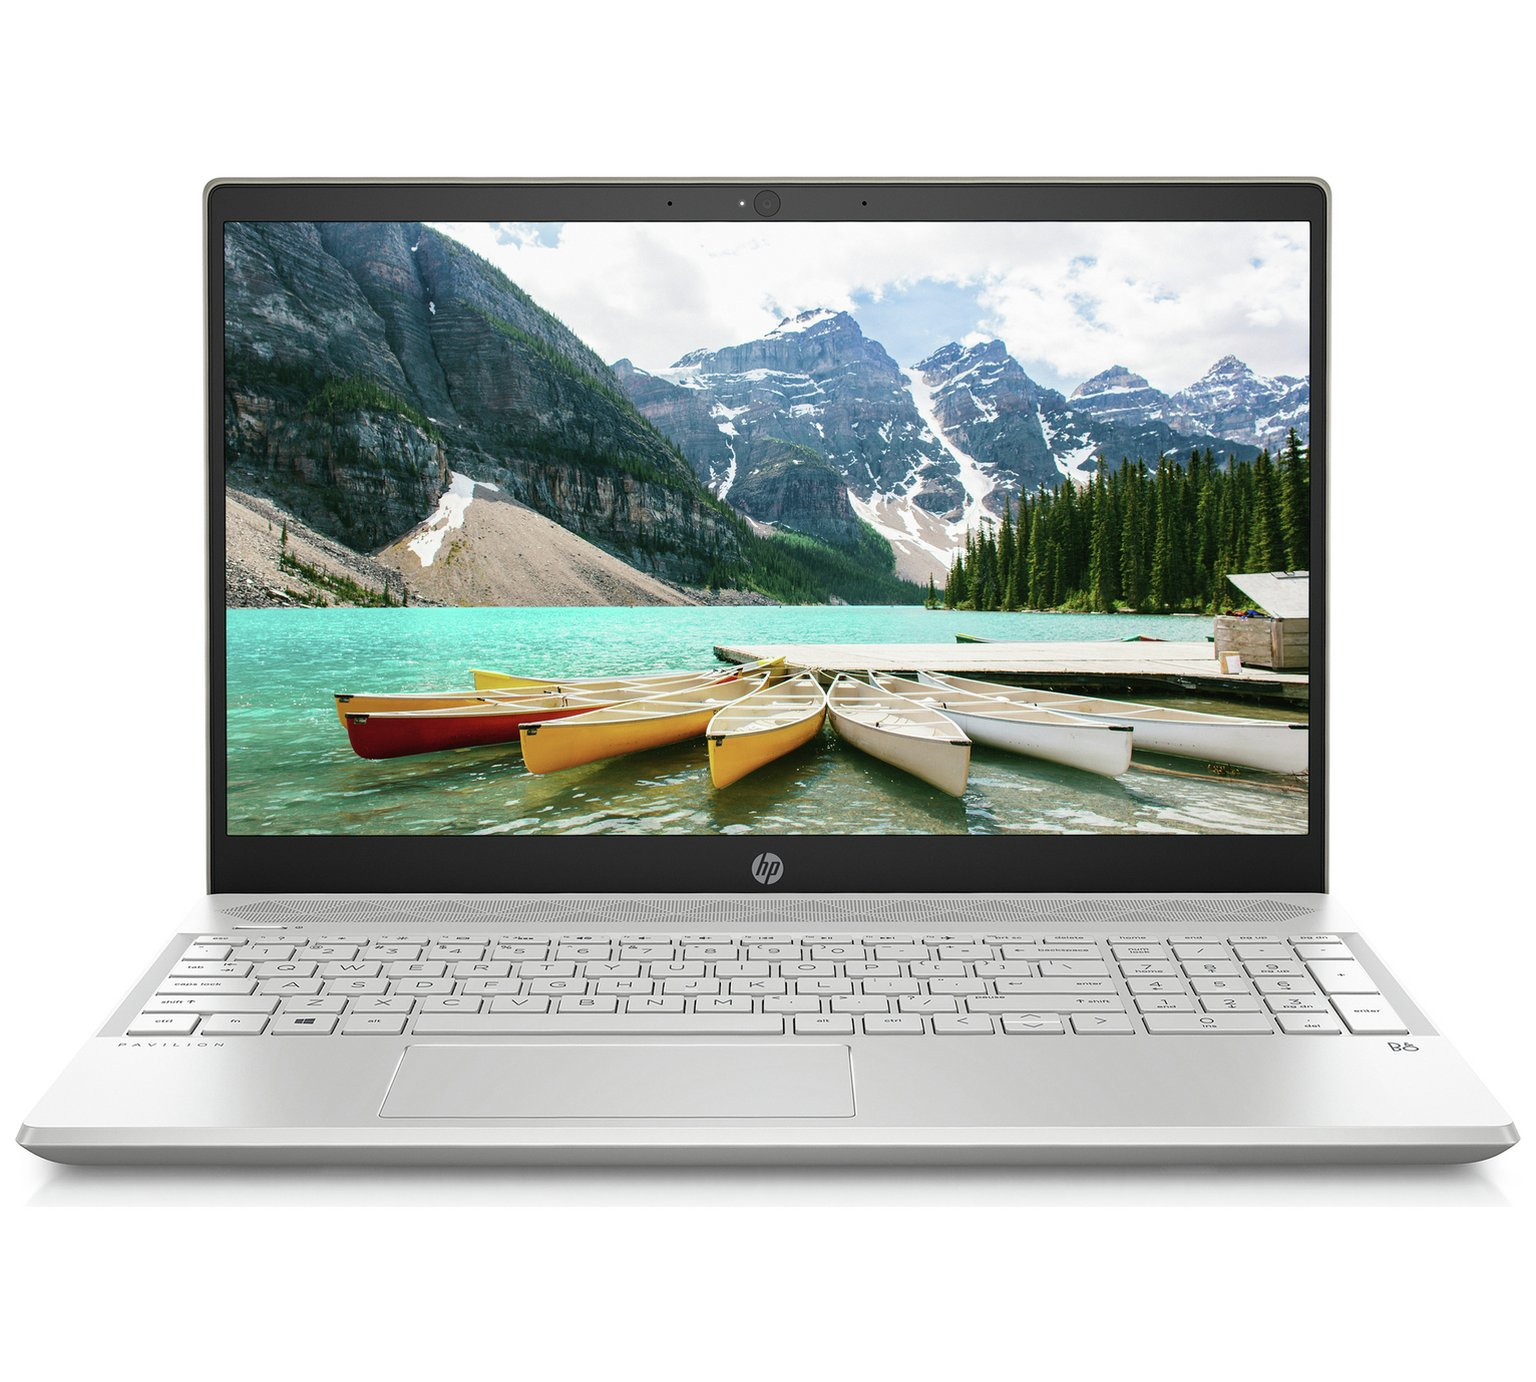 HP Pavilion 15.6 In Ryzen 5 8GB 1TB 128GB FHD Laptop – Gold by HP 865/9642